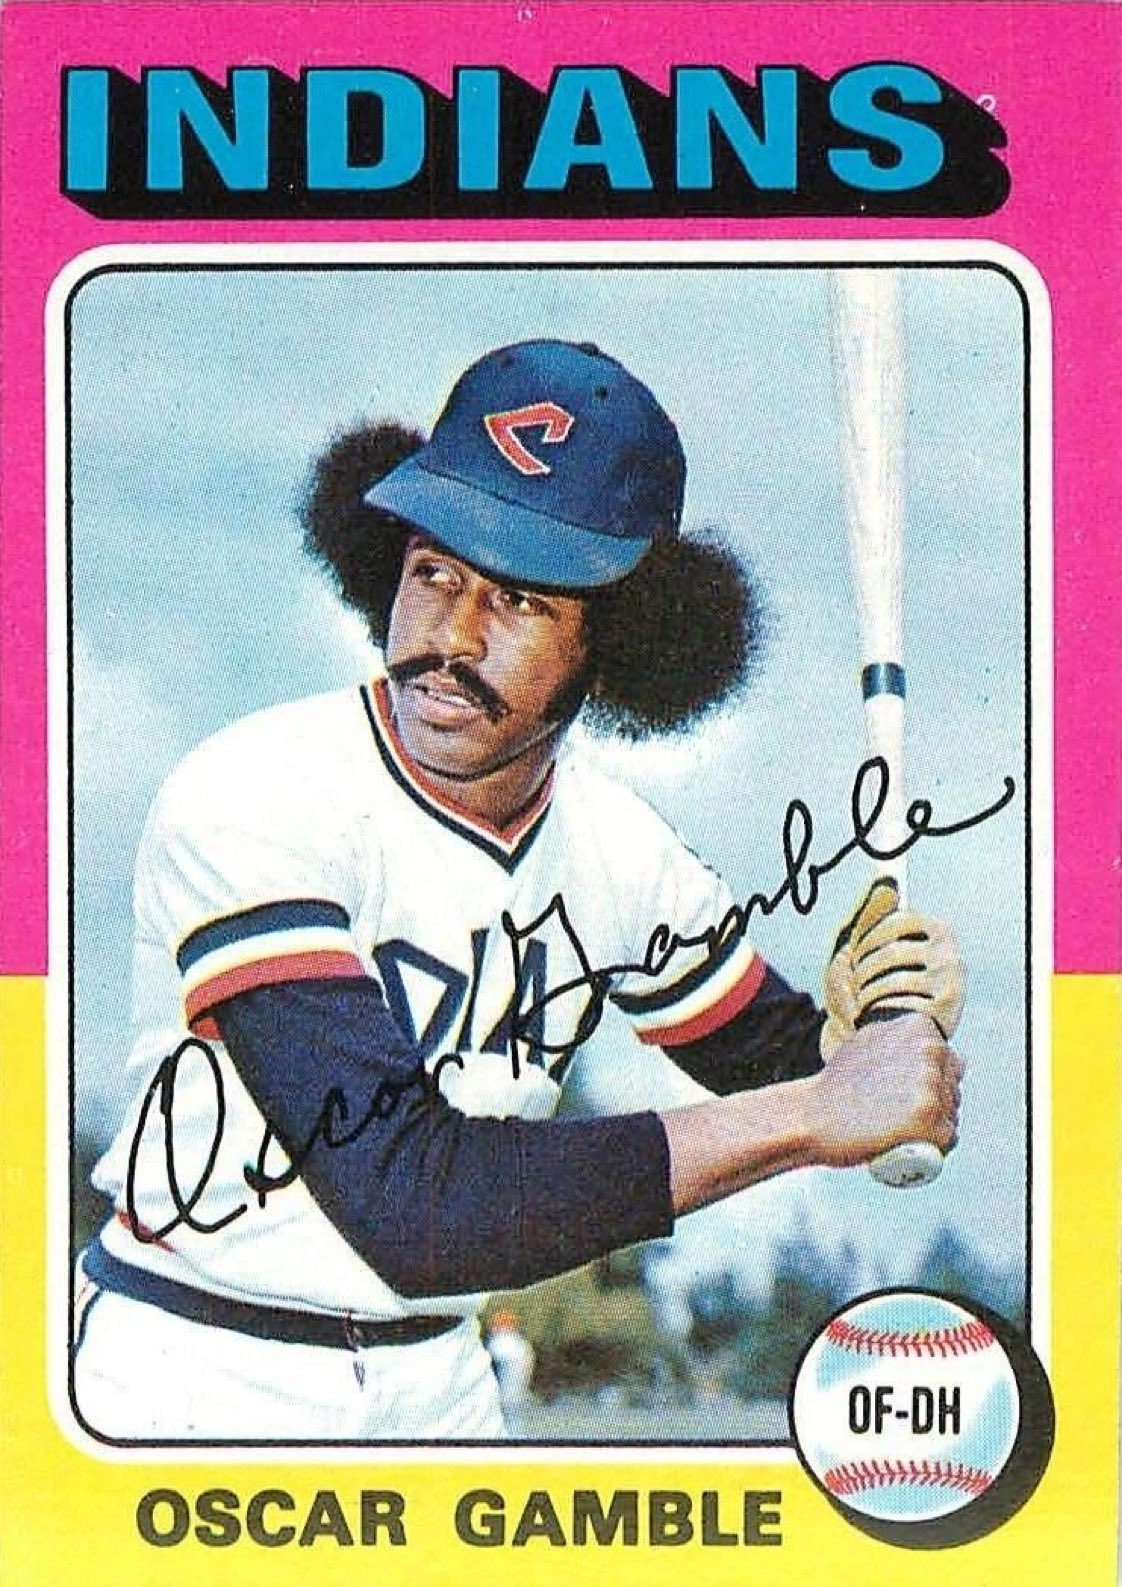 Everyone loves the 1976 Topps Traded Oscar Gamble but you better not sleep on this sweet '75. https://t.co/rcWooJHG5L